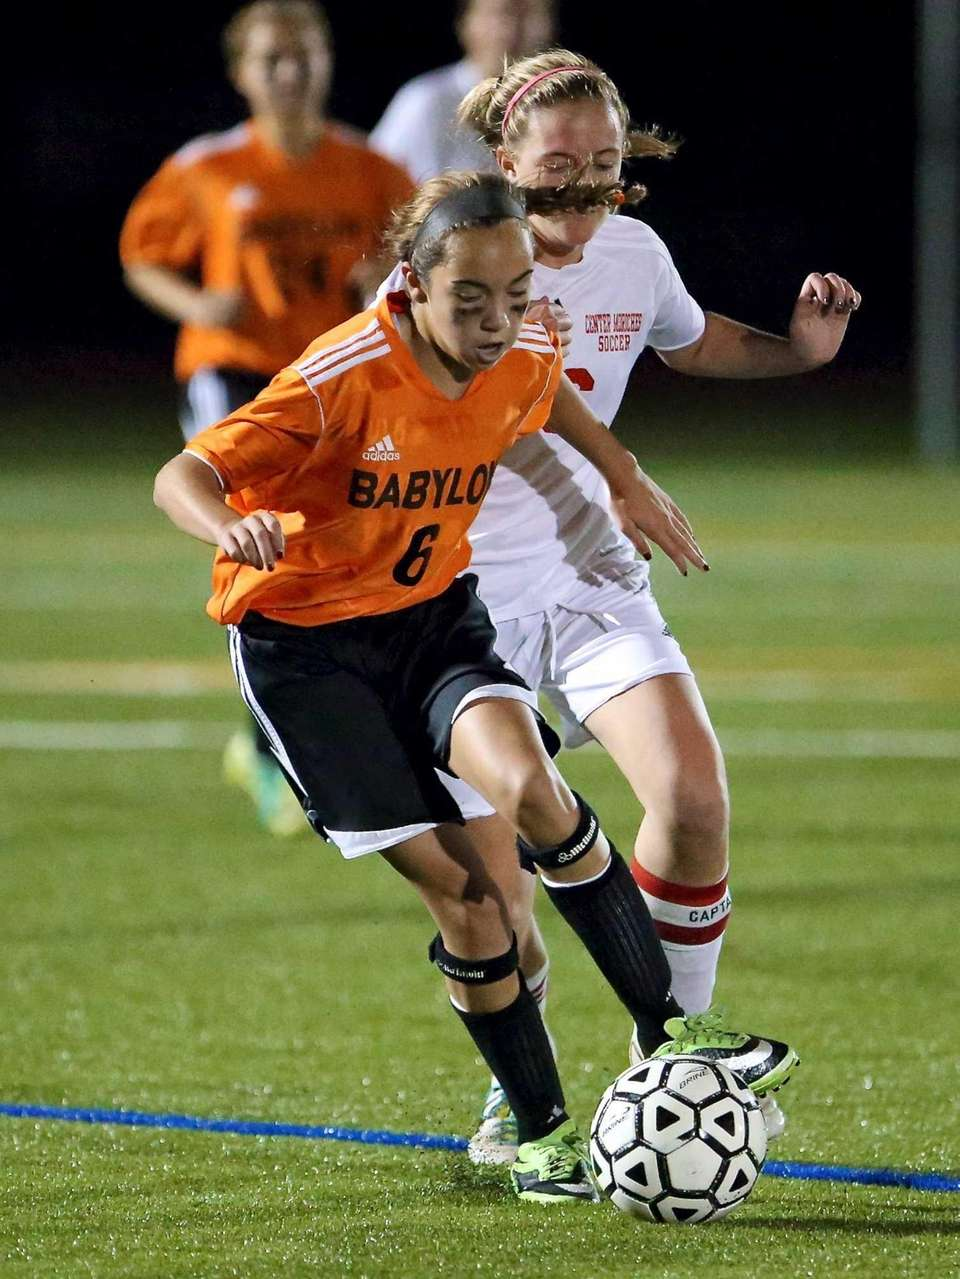 Babylon's Olivia Maldonado controls the ball as Center